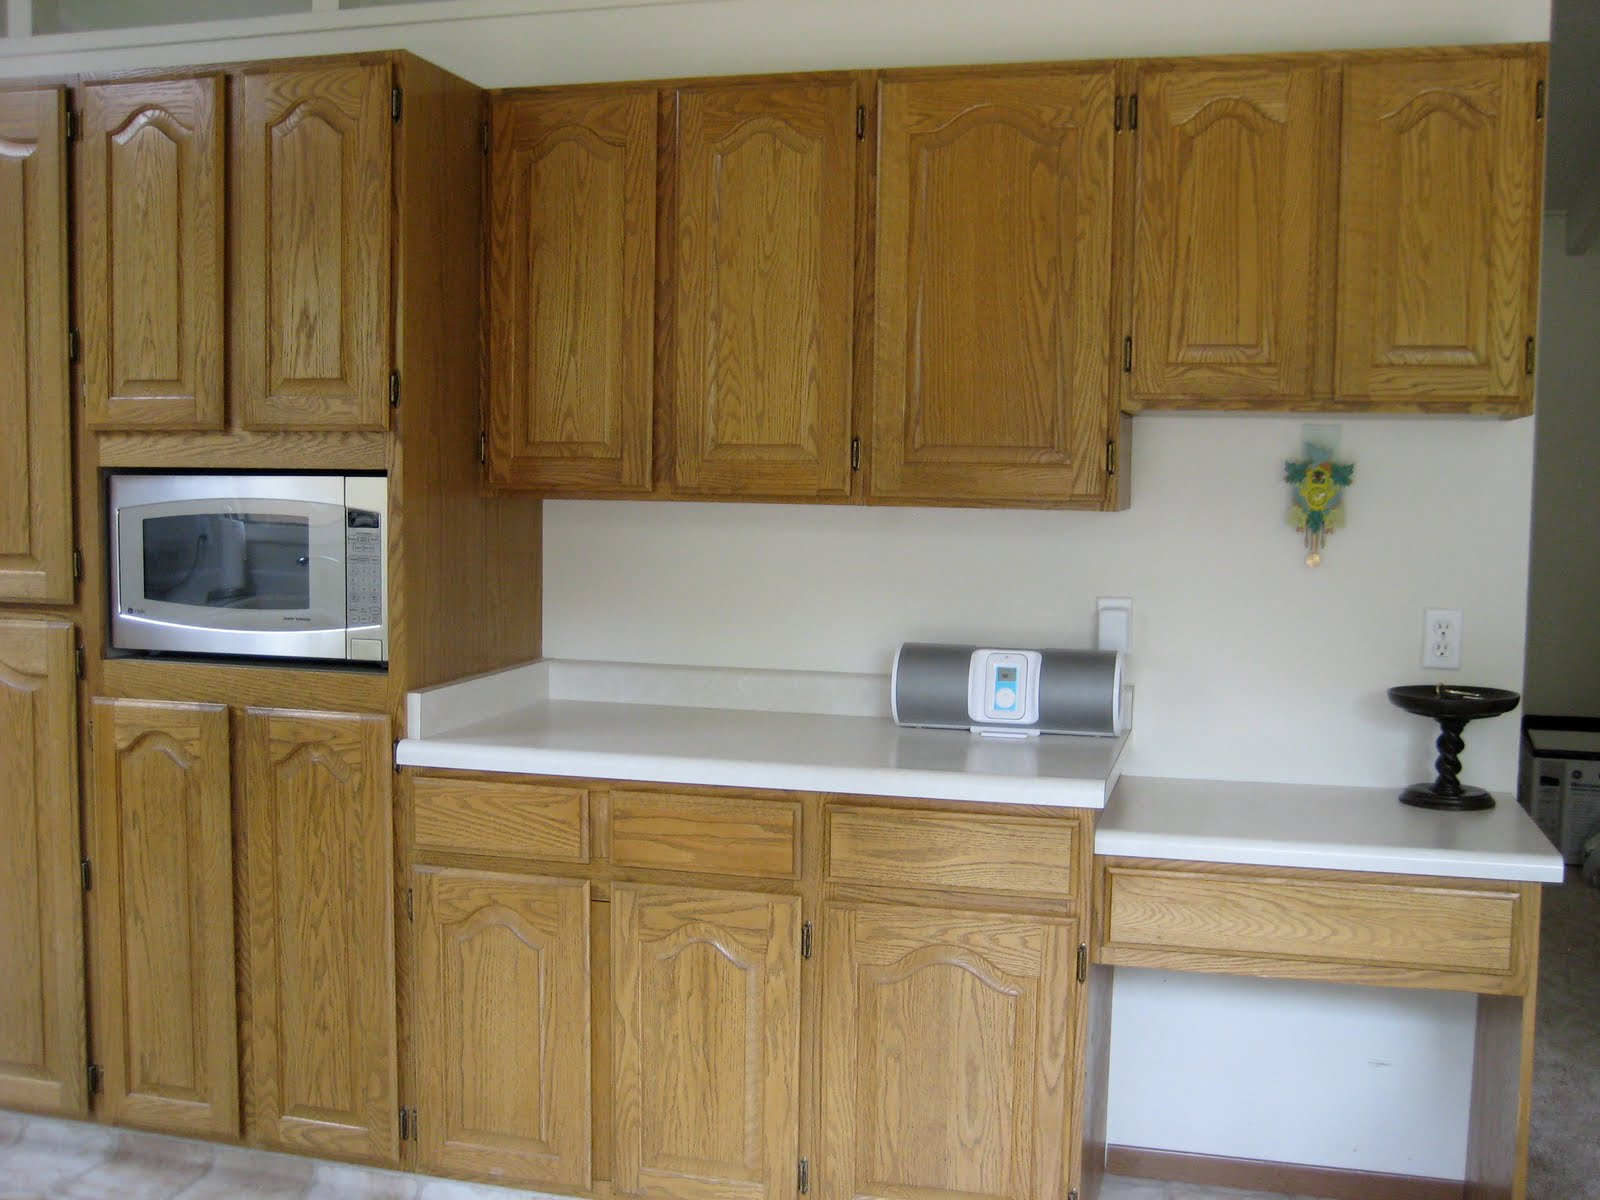 28 kitchen cabinet makeovers very fine house kitchen kitchen cabinet makeovers very fine house kitchen cabinet makeover